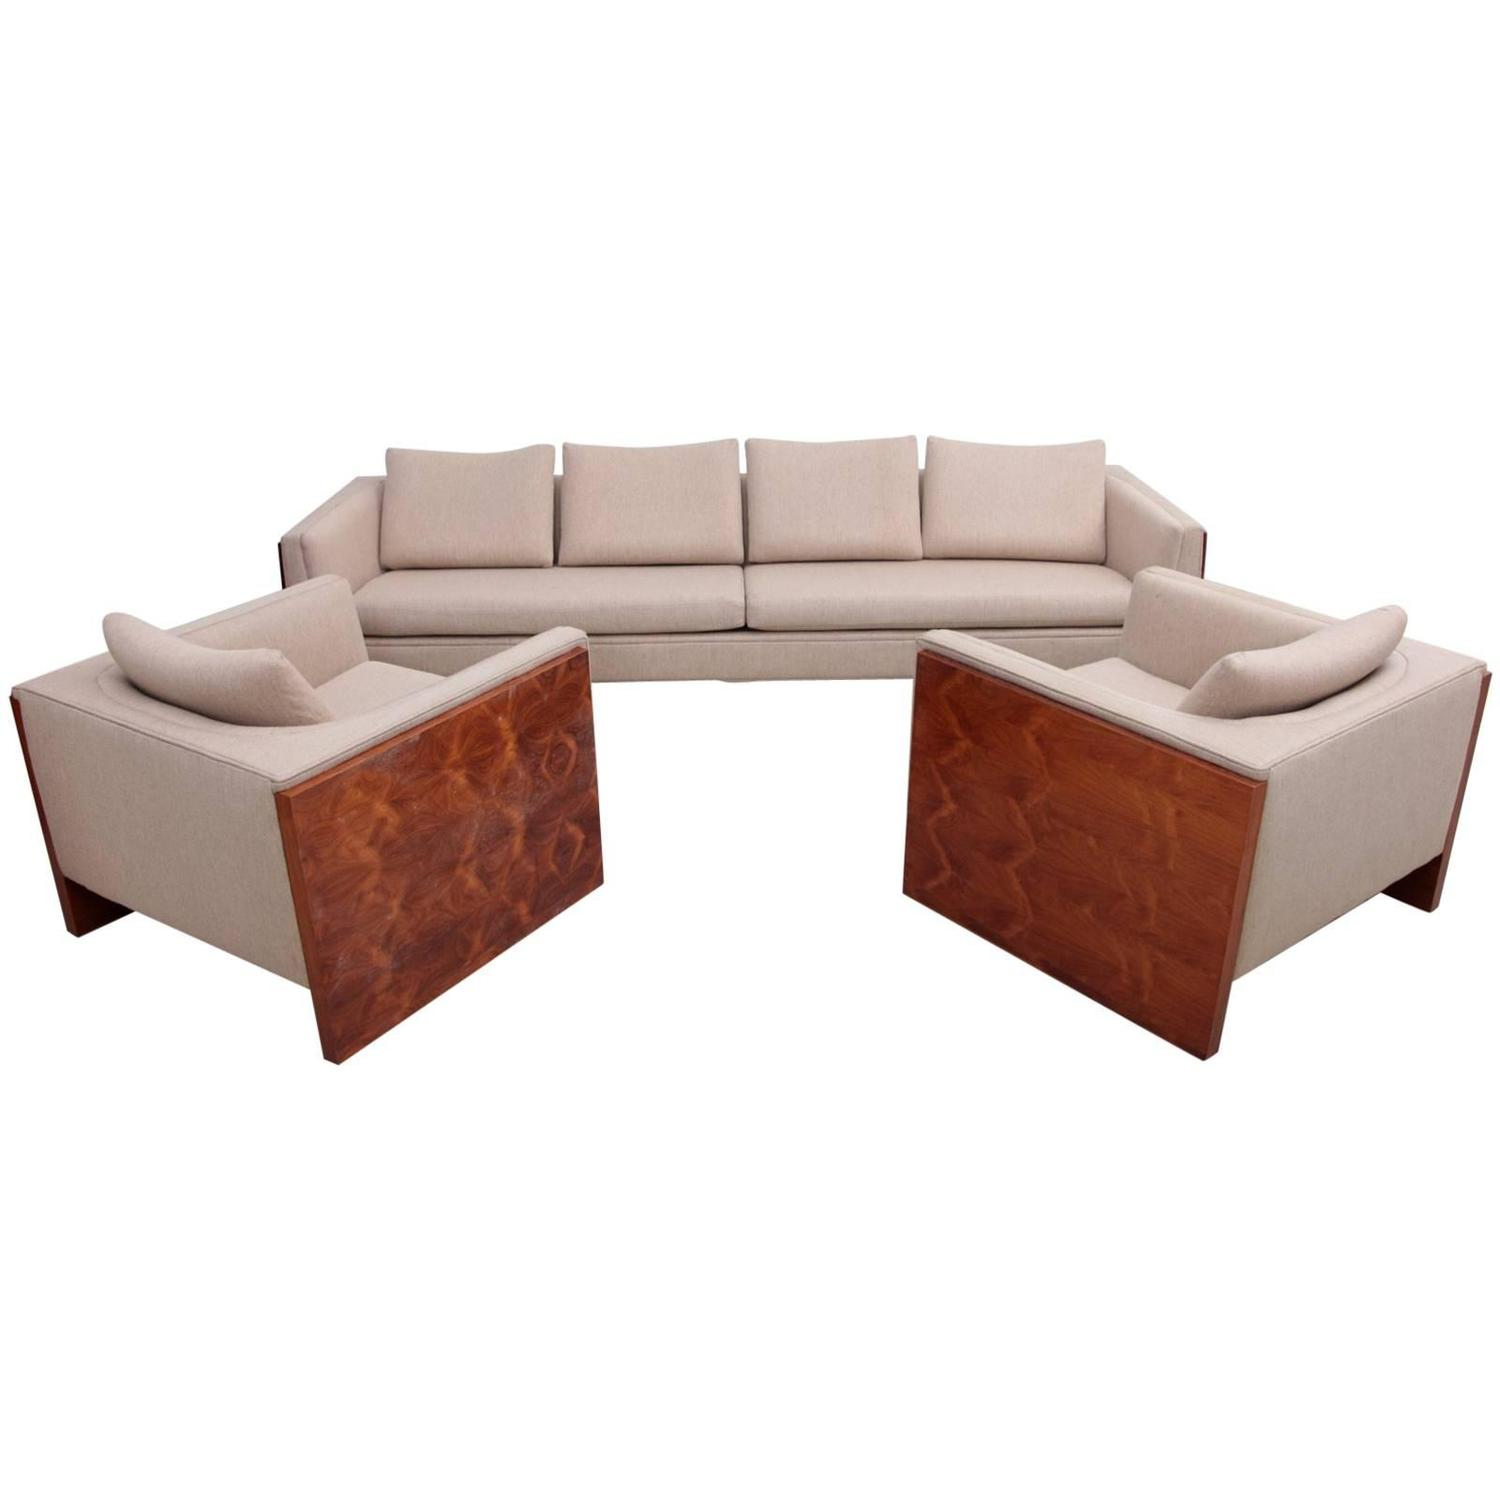 Milo Baughman Case Sofa Set For Sale At 1stdibs